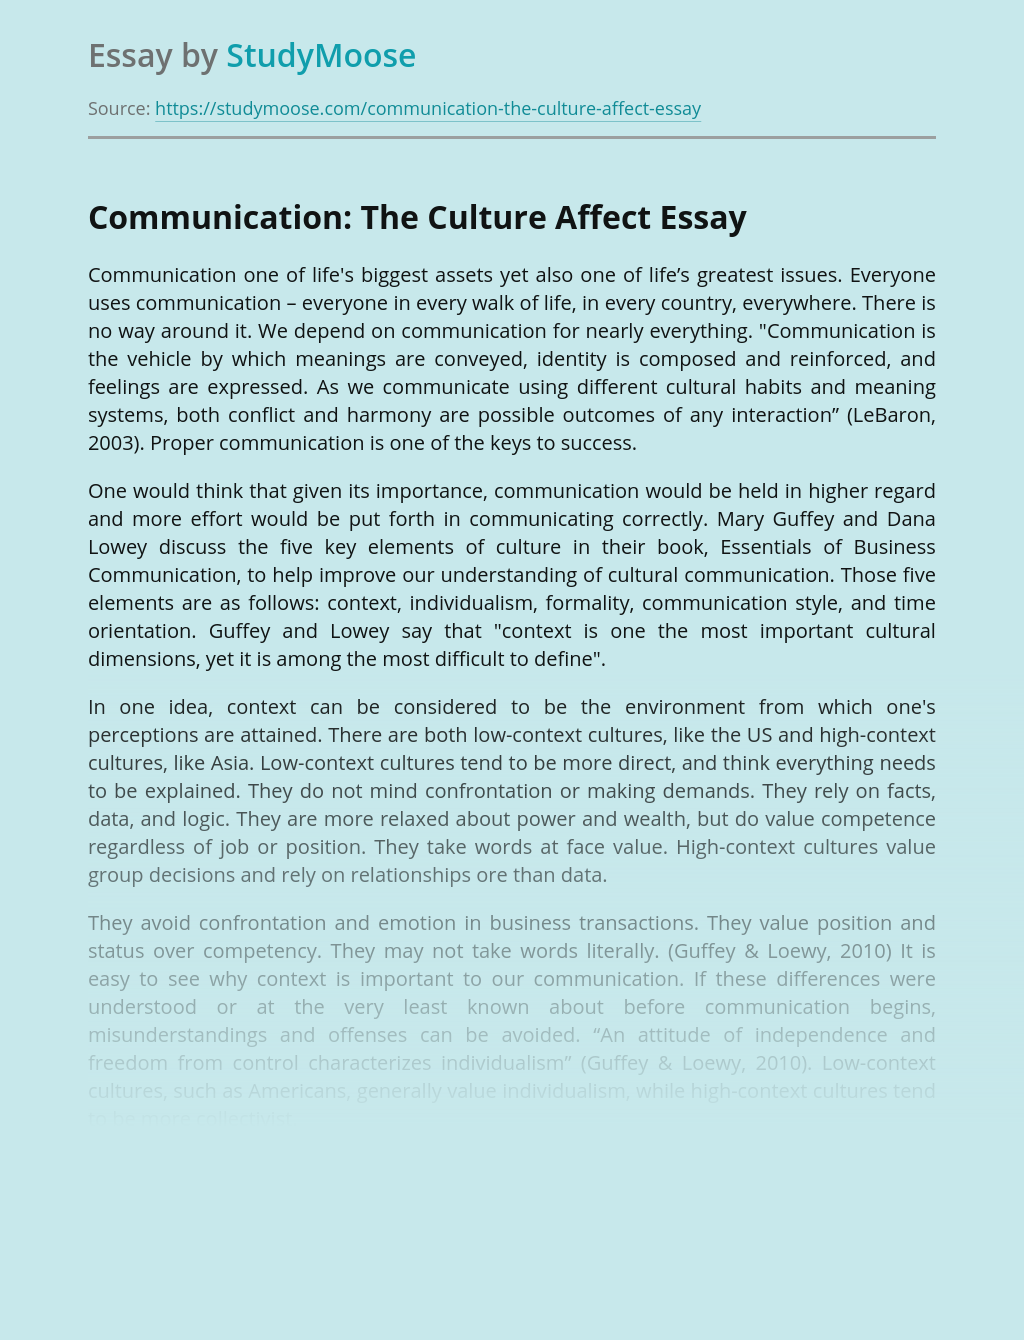 Communication: The Culture Affect